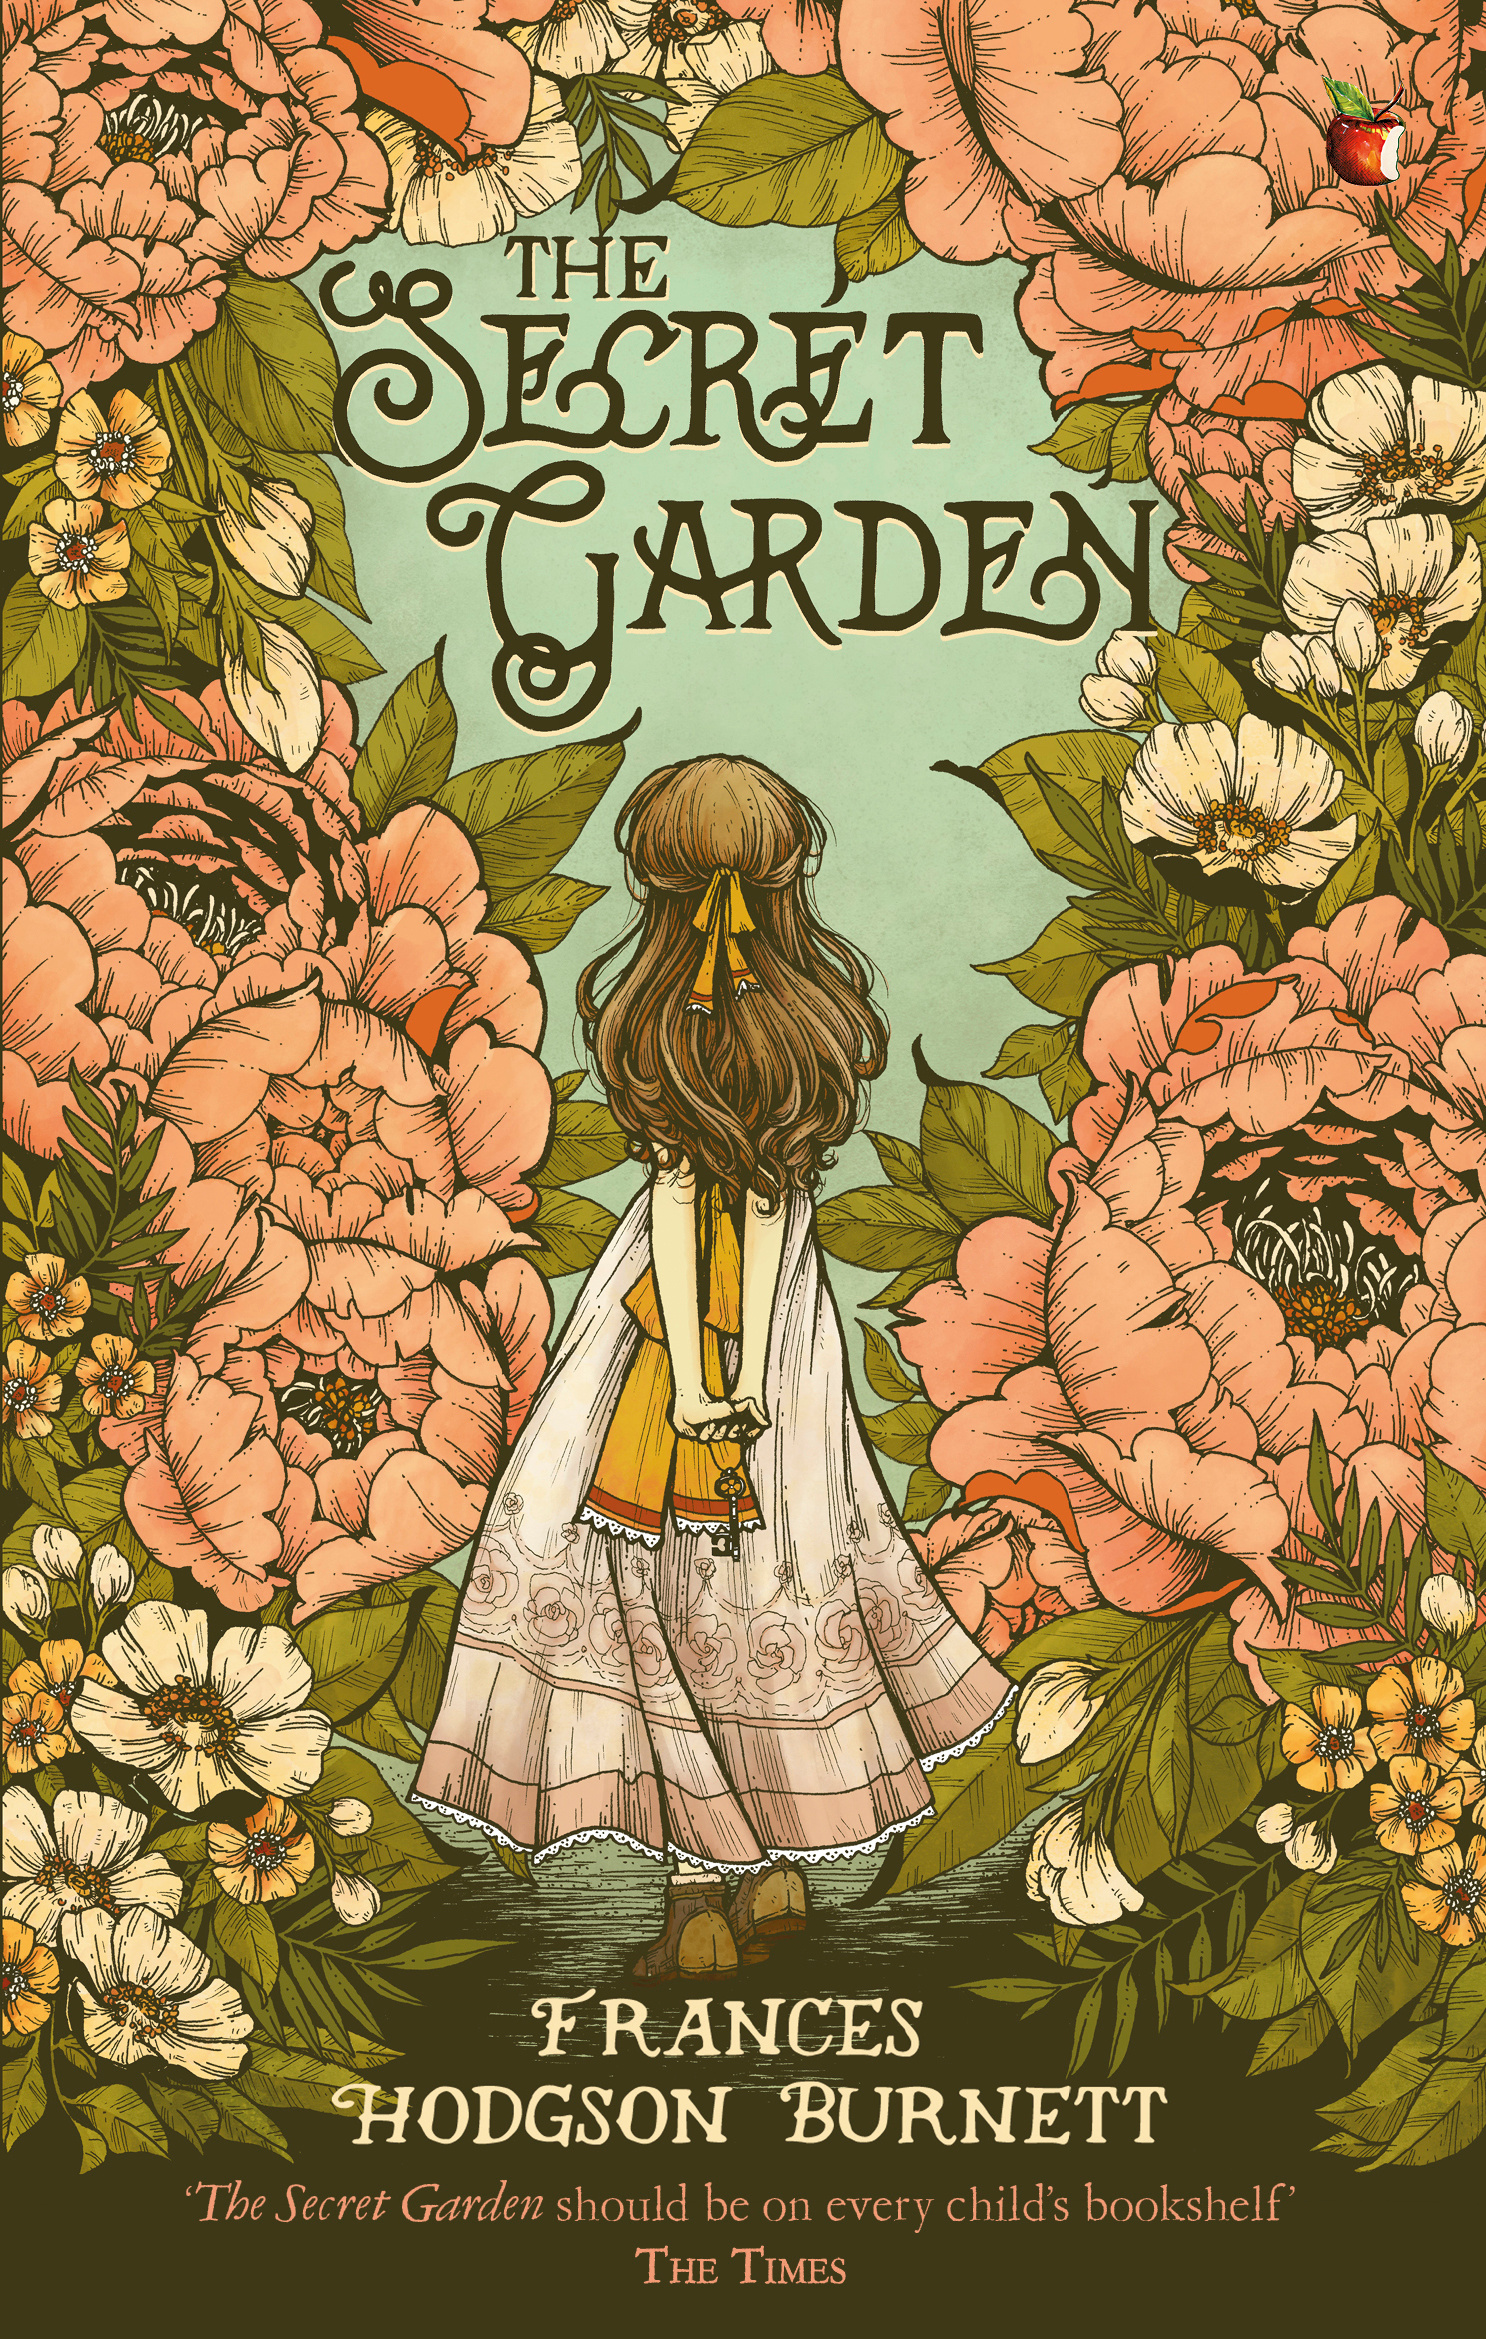 Secret Garden: The Secret Garden By Frances Hodgson Burnett